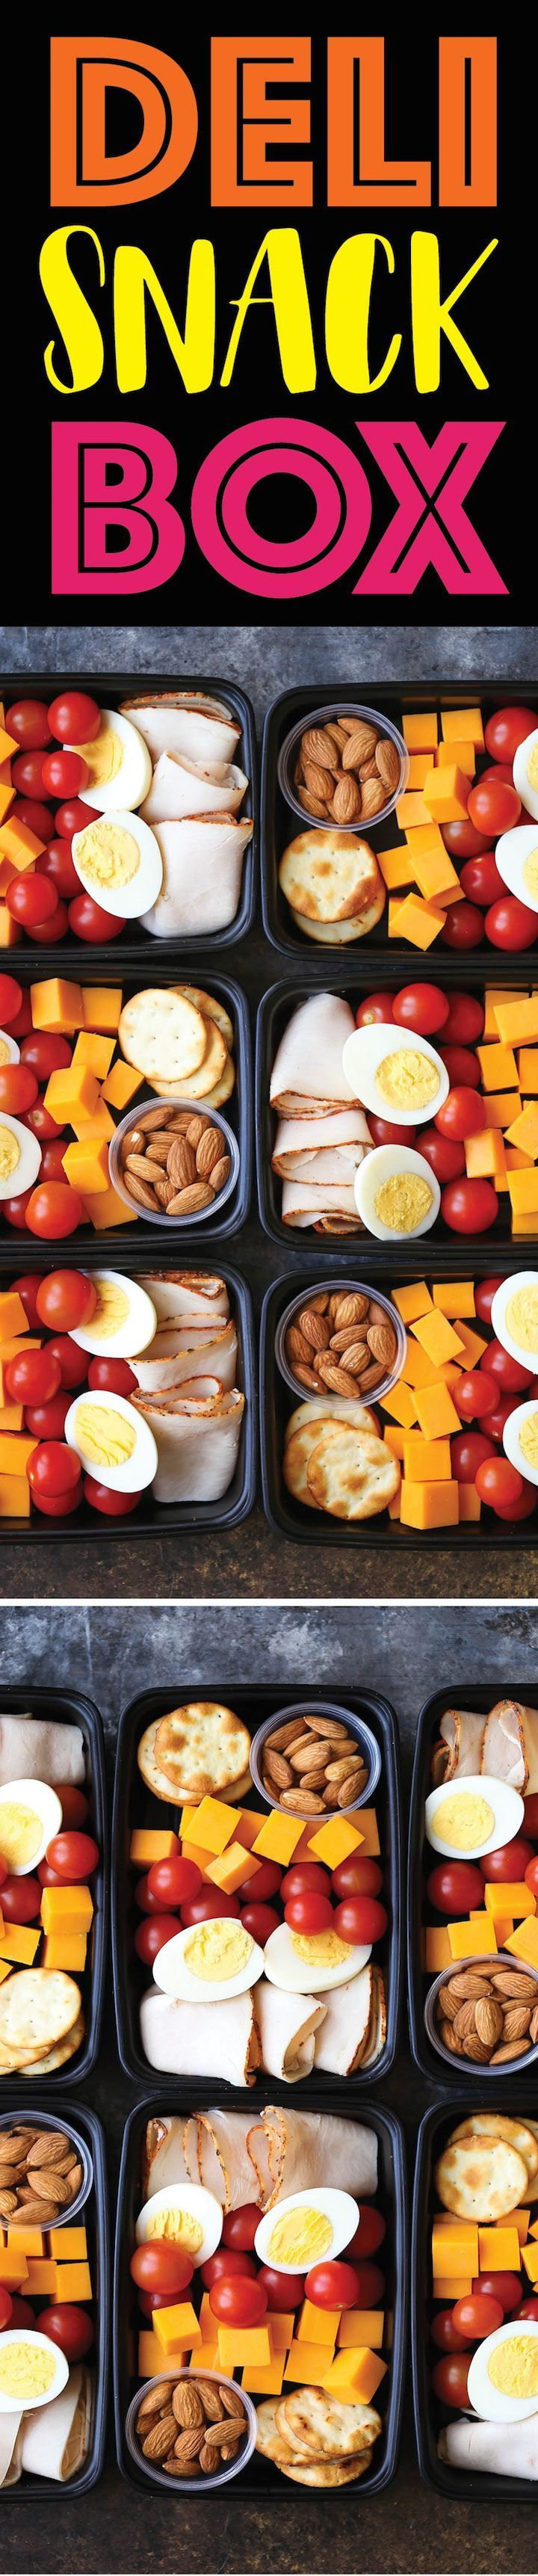 4399 best Snacks and Mouthfuls images on Pinterest